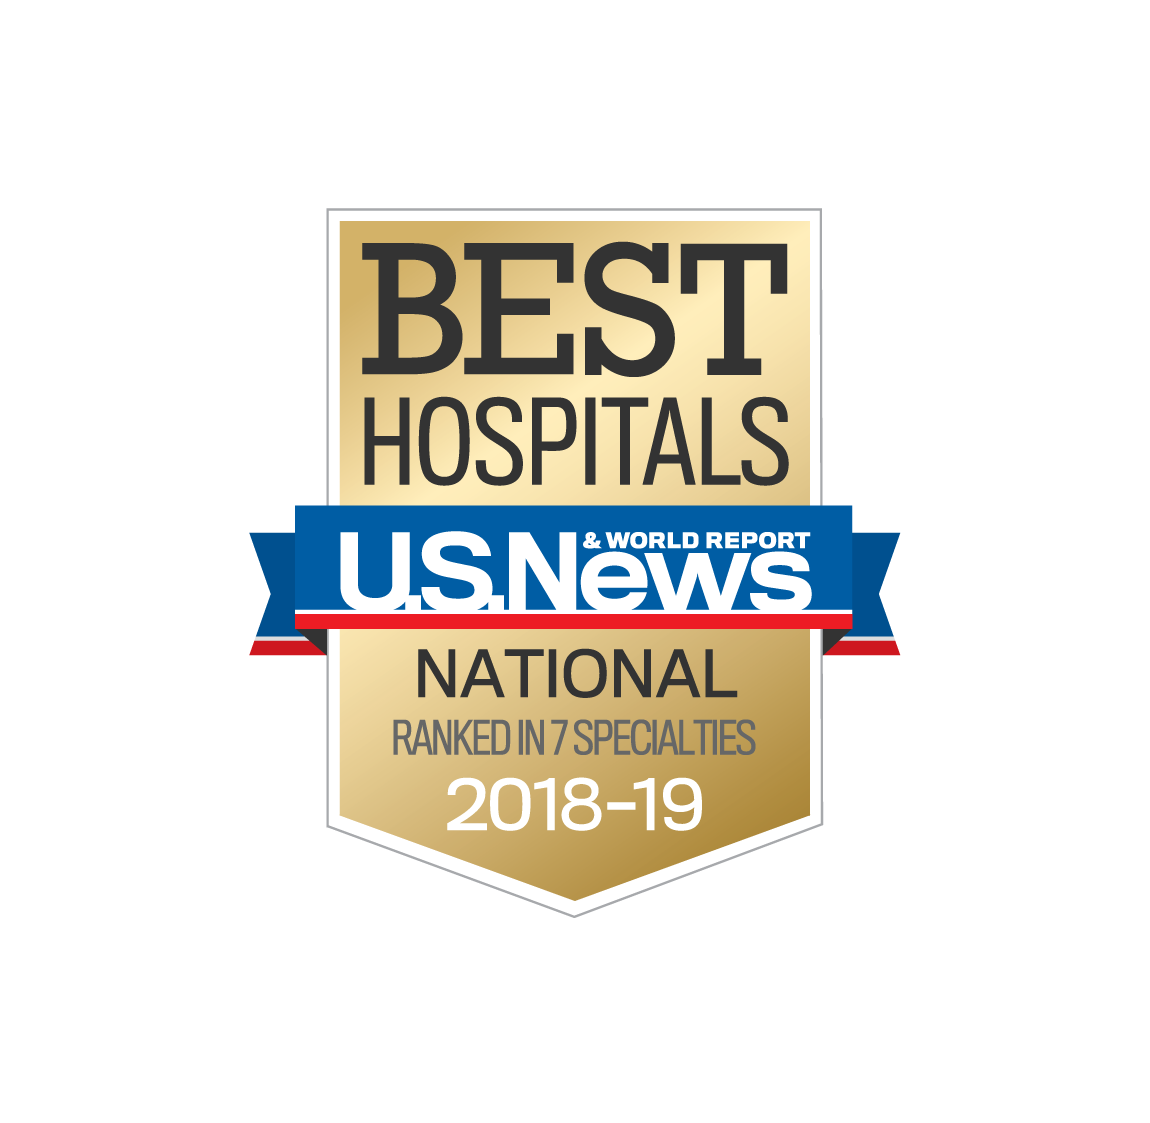 Ranked in 7 specialties by U.S. News